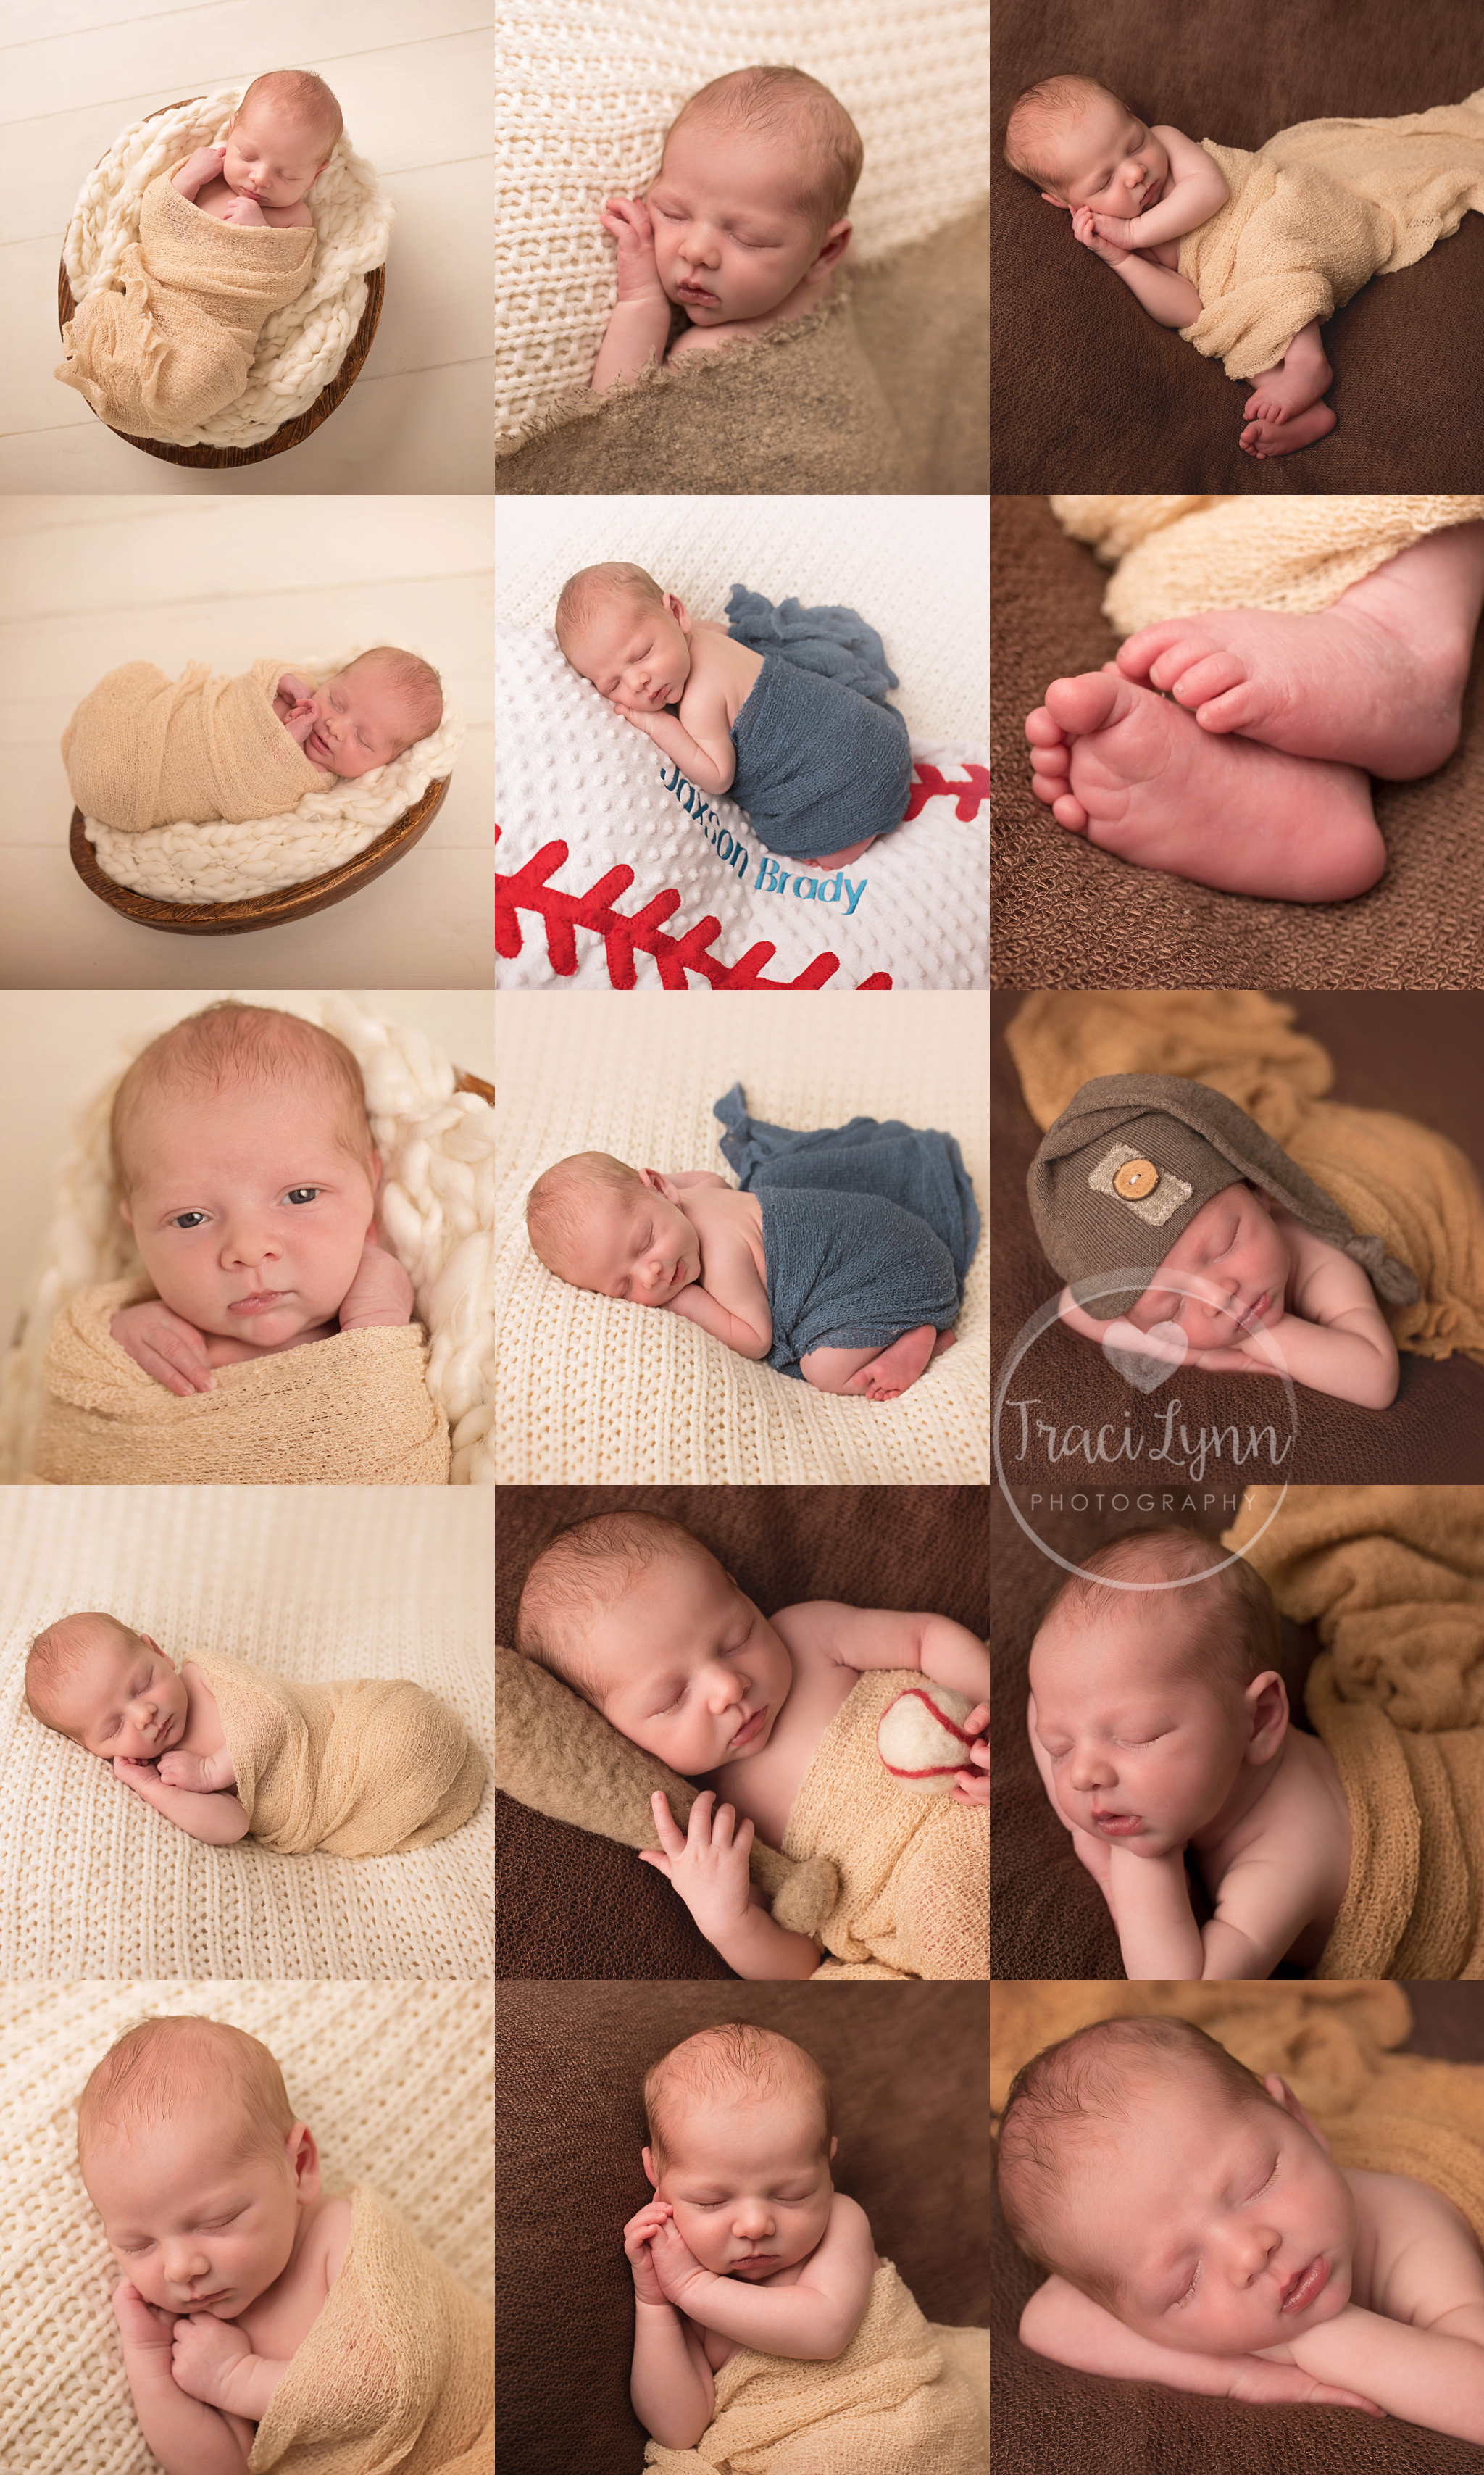 Go to TraciLynnPhotography.com/newborn to start planning your baby's session today!